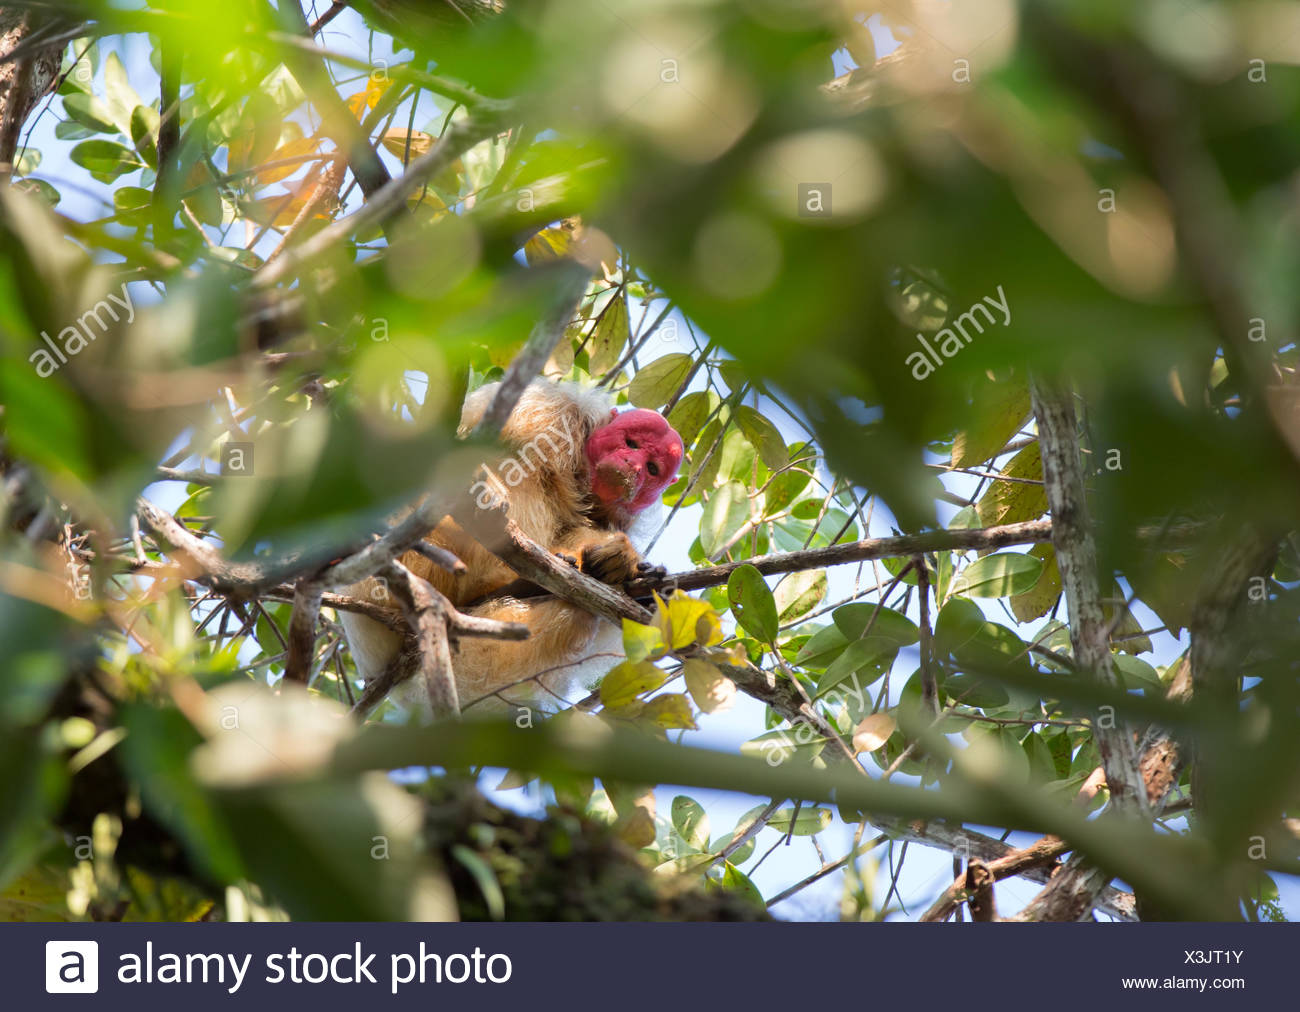 A white Uakari Monkey, Cacajao calvus, on branch of tree in the Amazon jungle. Stock Photo